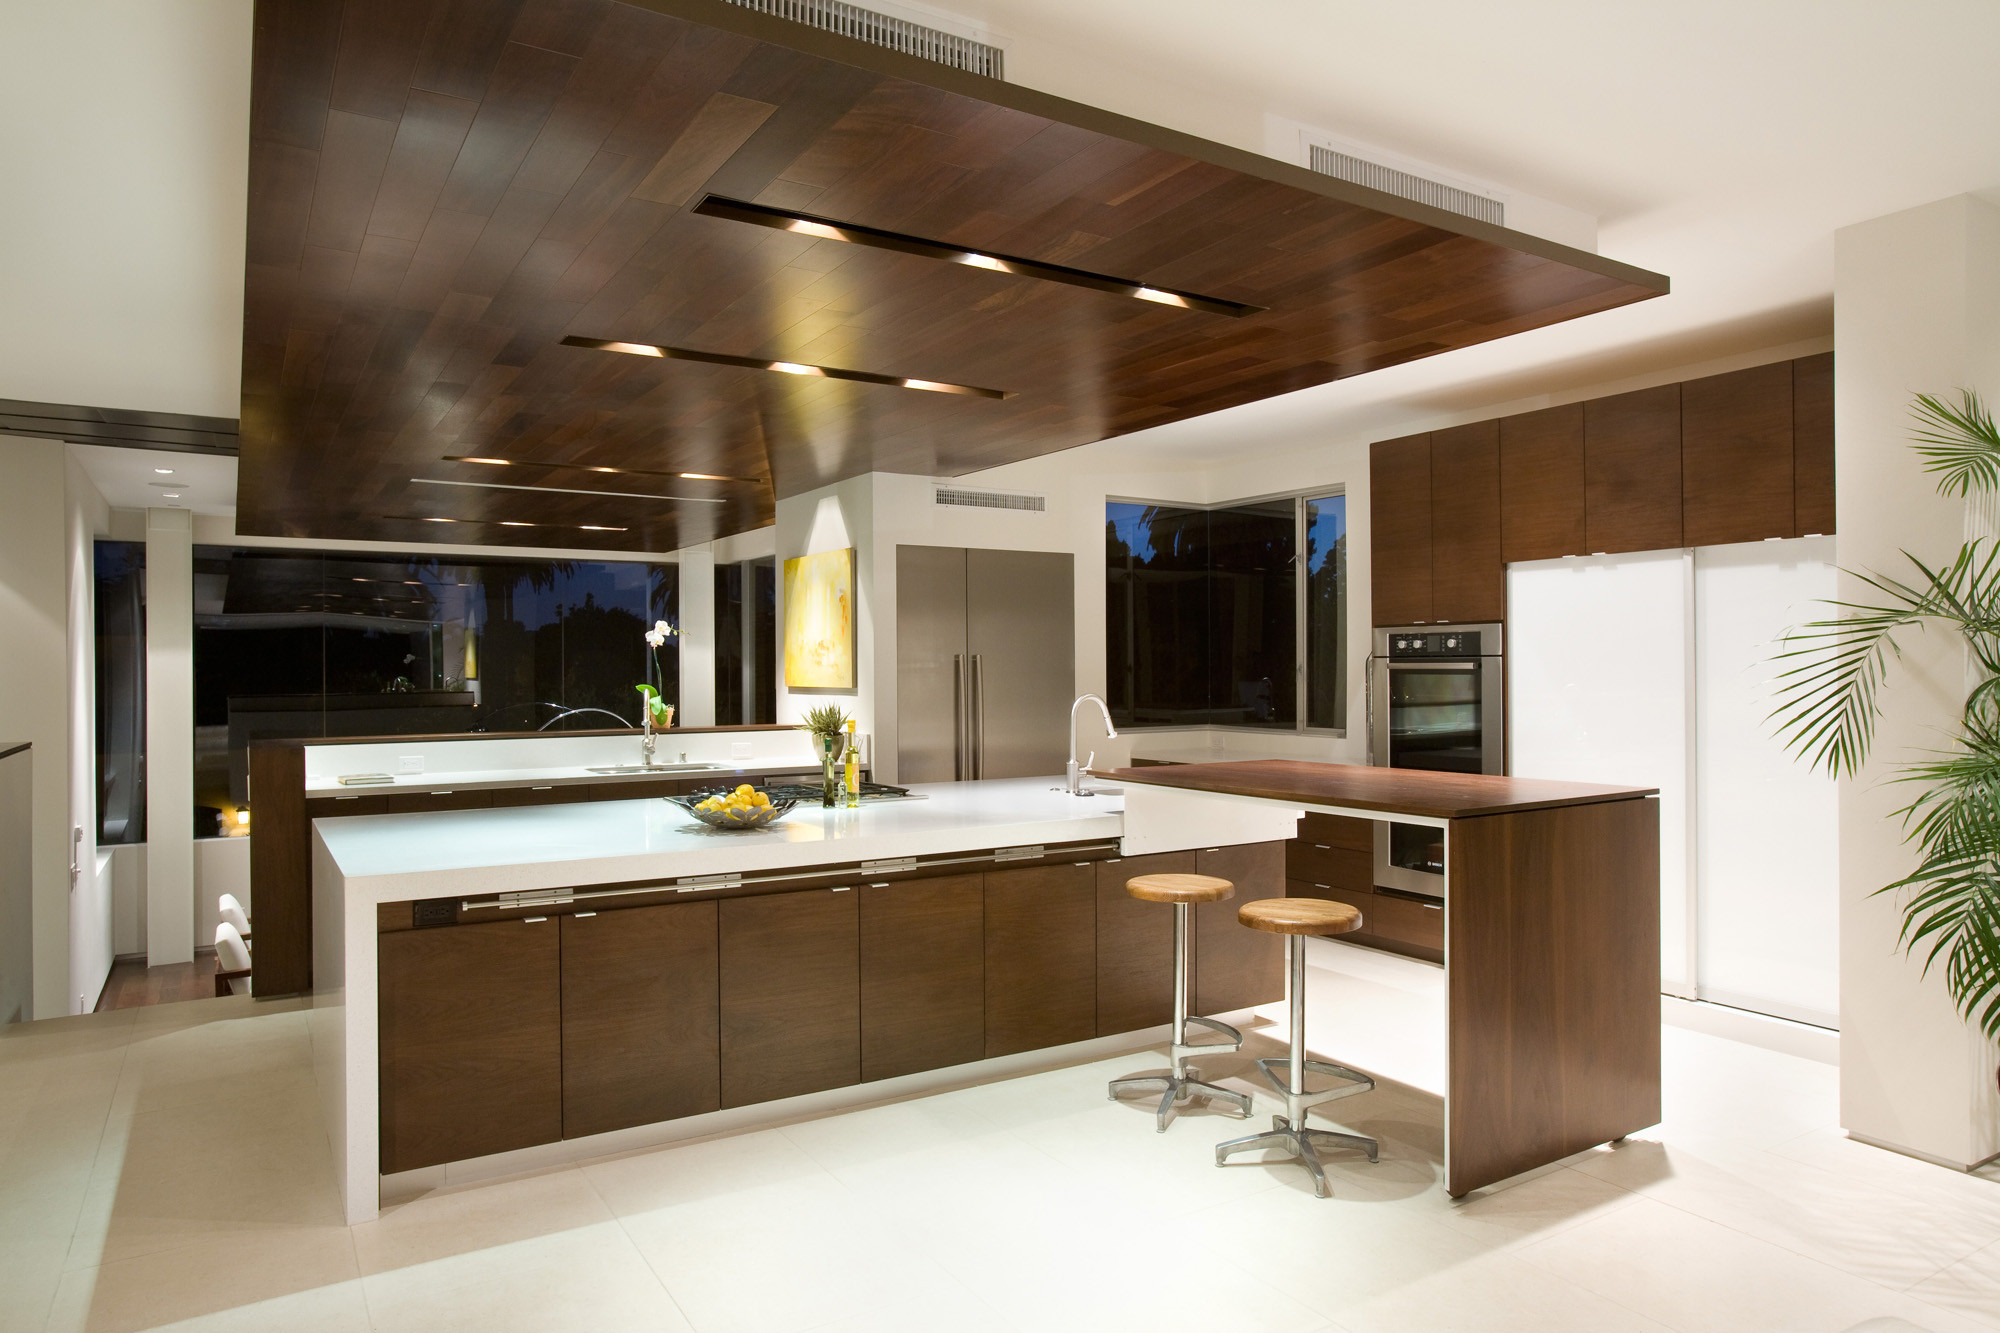 Gallery of house on kilrenney avenue ikoniko 10 for V kitchen philippines